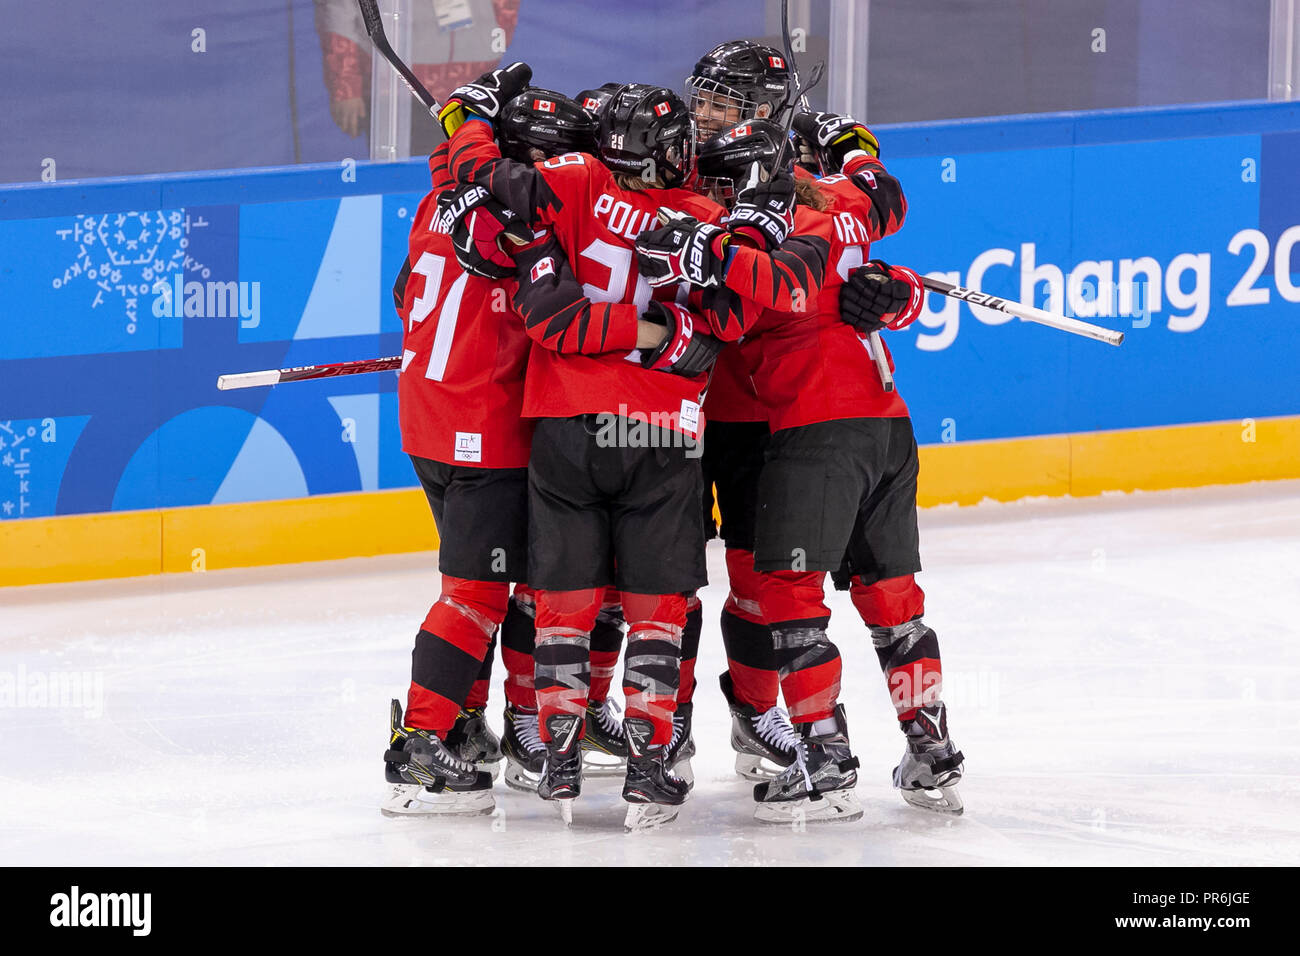 Team Cananda celebrates goal vs Team OAR competing in Women's hockey at the Olympic Winter Games PyeongChang 2018 - Stock Image